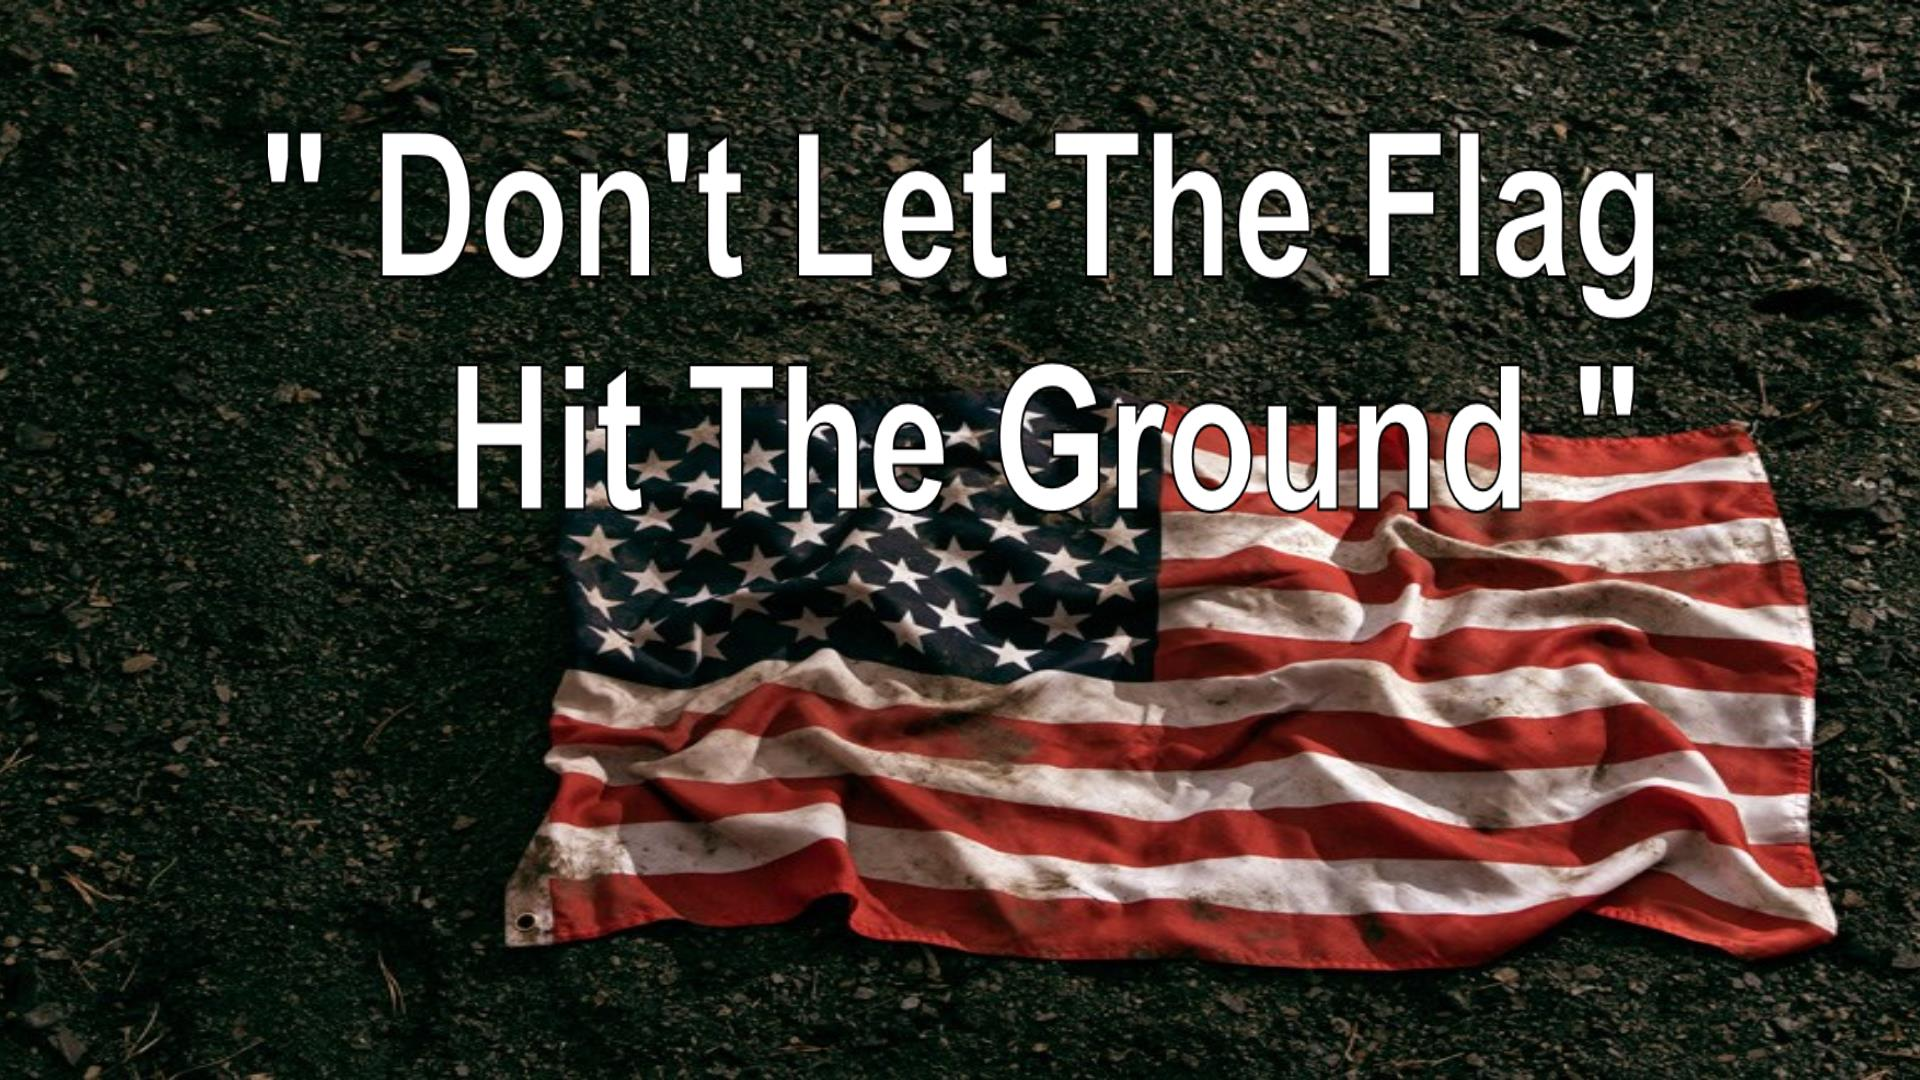 Don't Let The Flag Hit The Ground